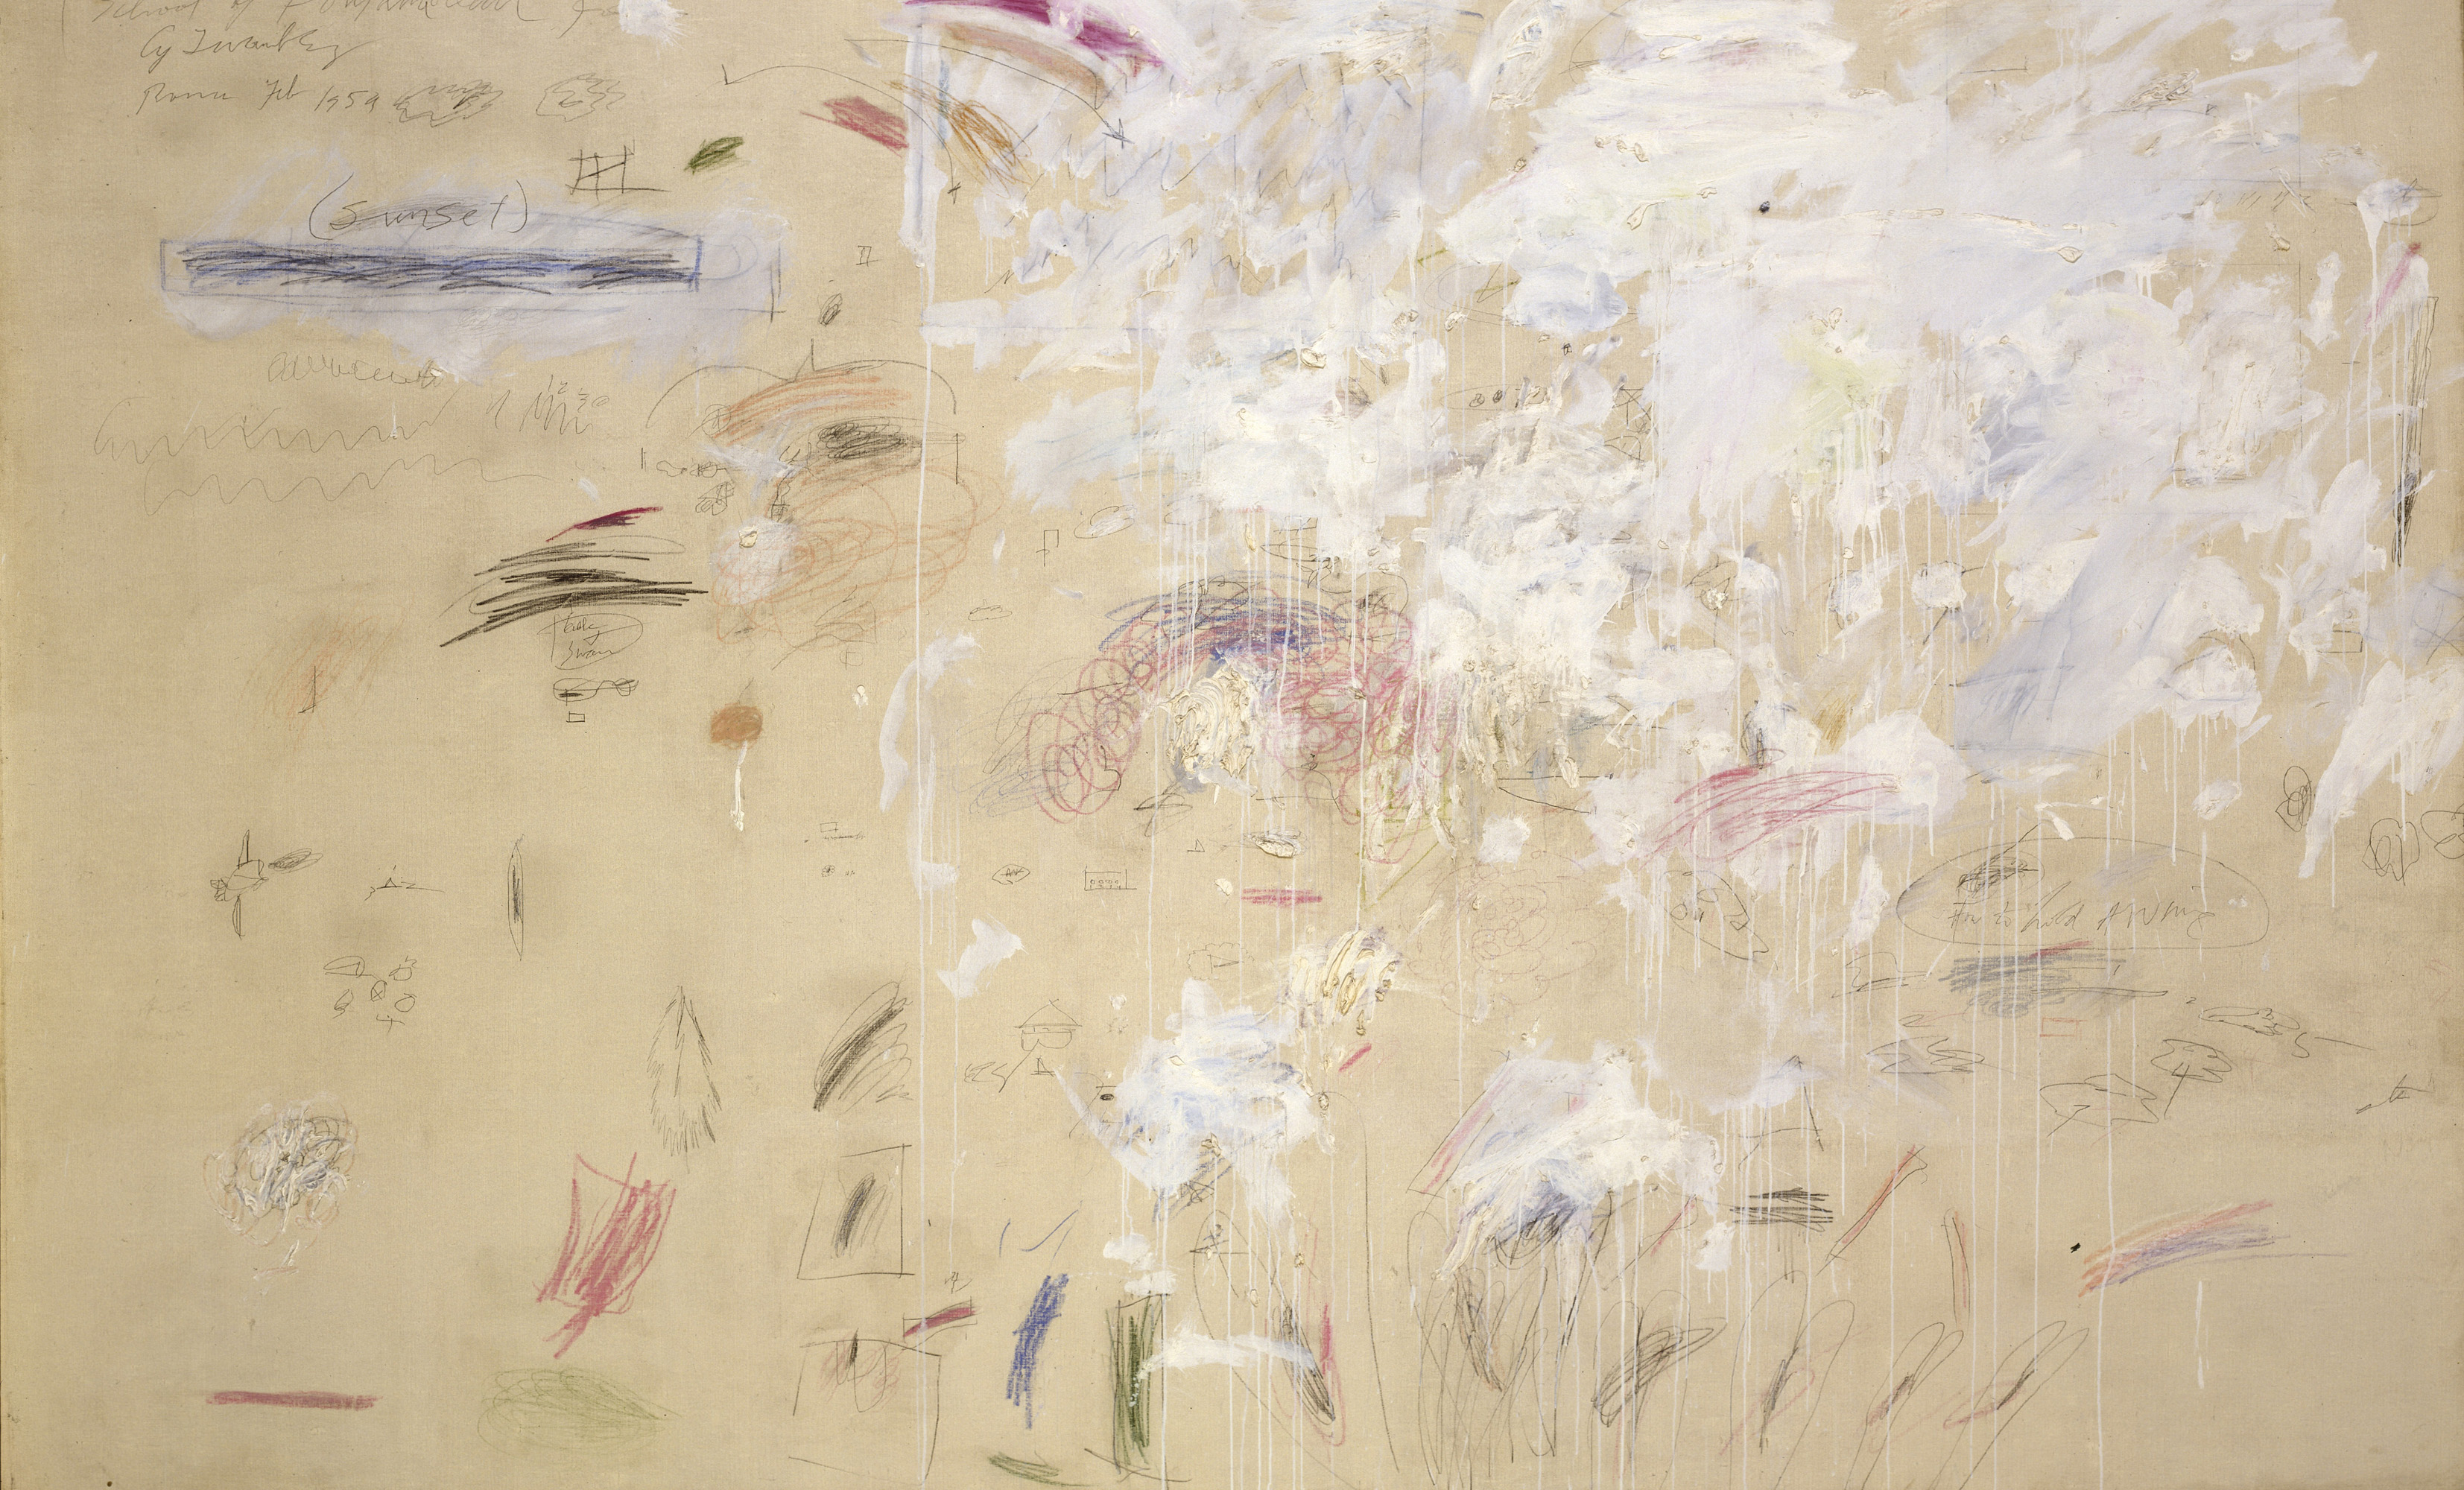 01_CyTwombly_SchoolofFontainebleau